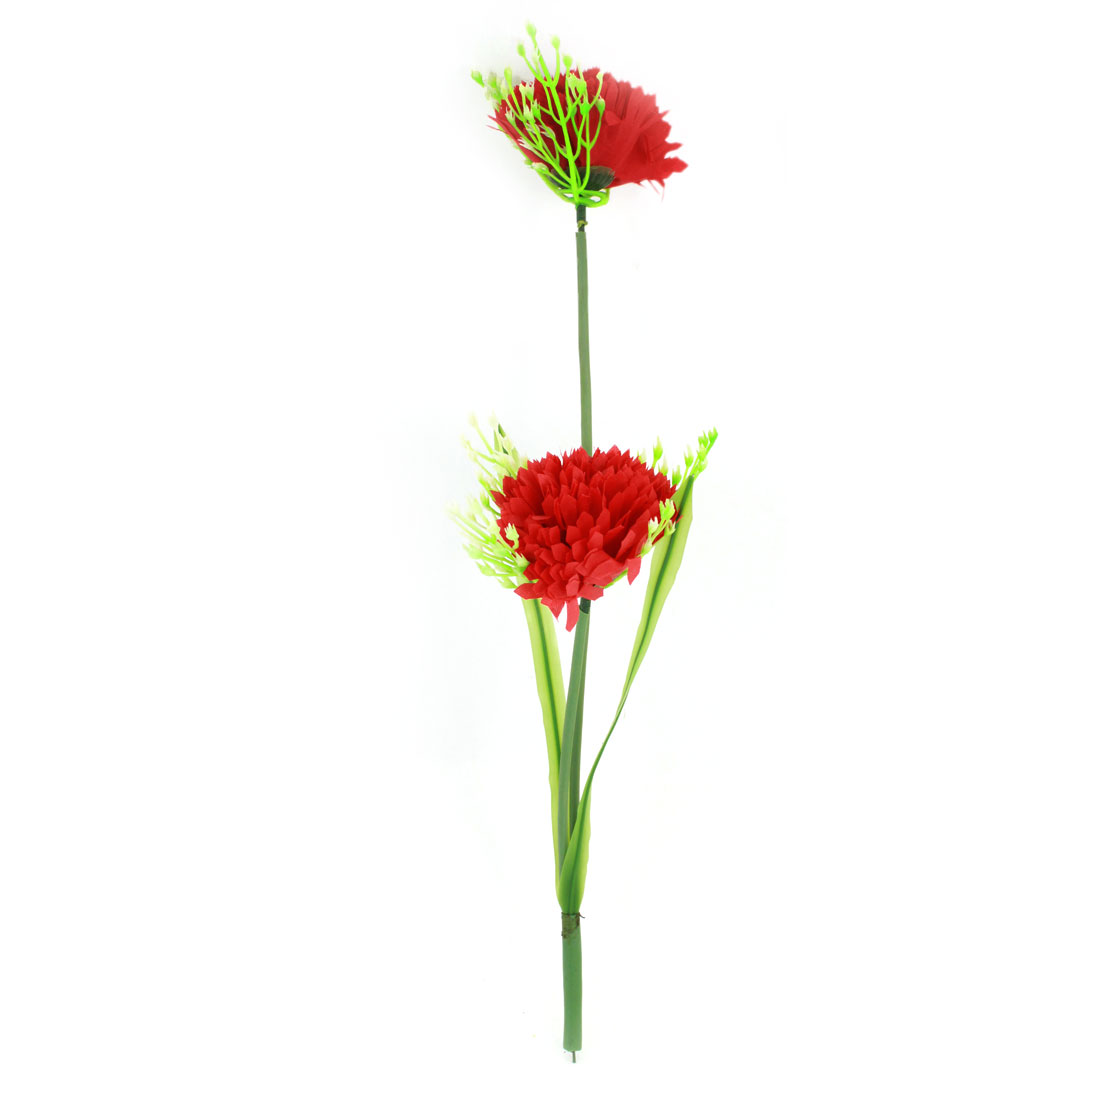 Living Room Table Simulation Plastic Red Flowers Ornament 35cm High